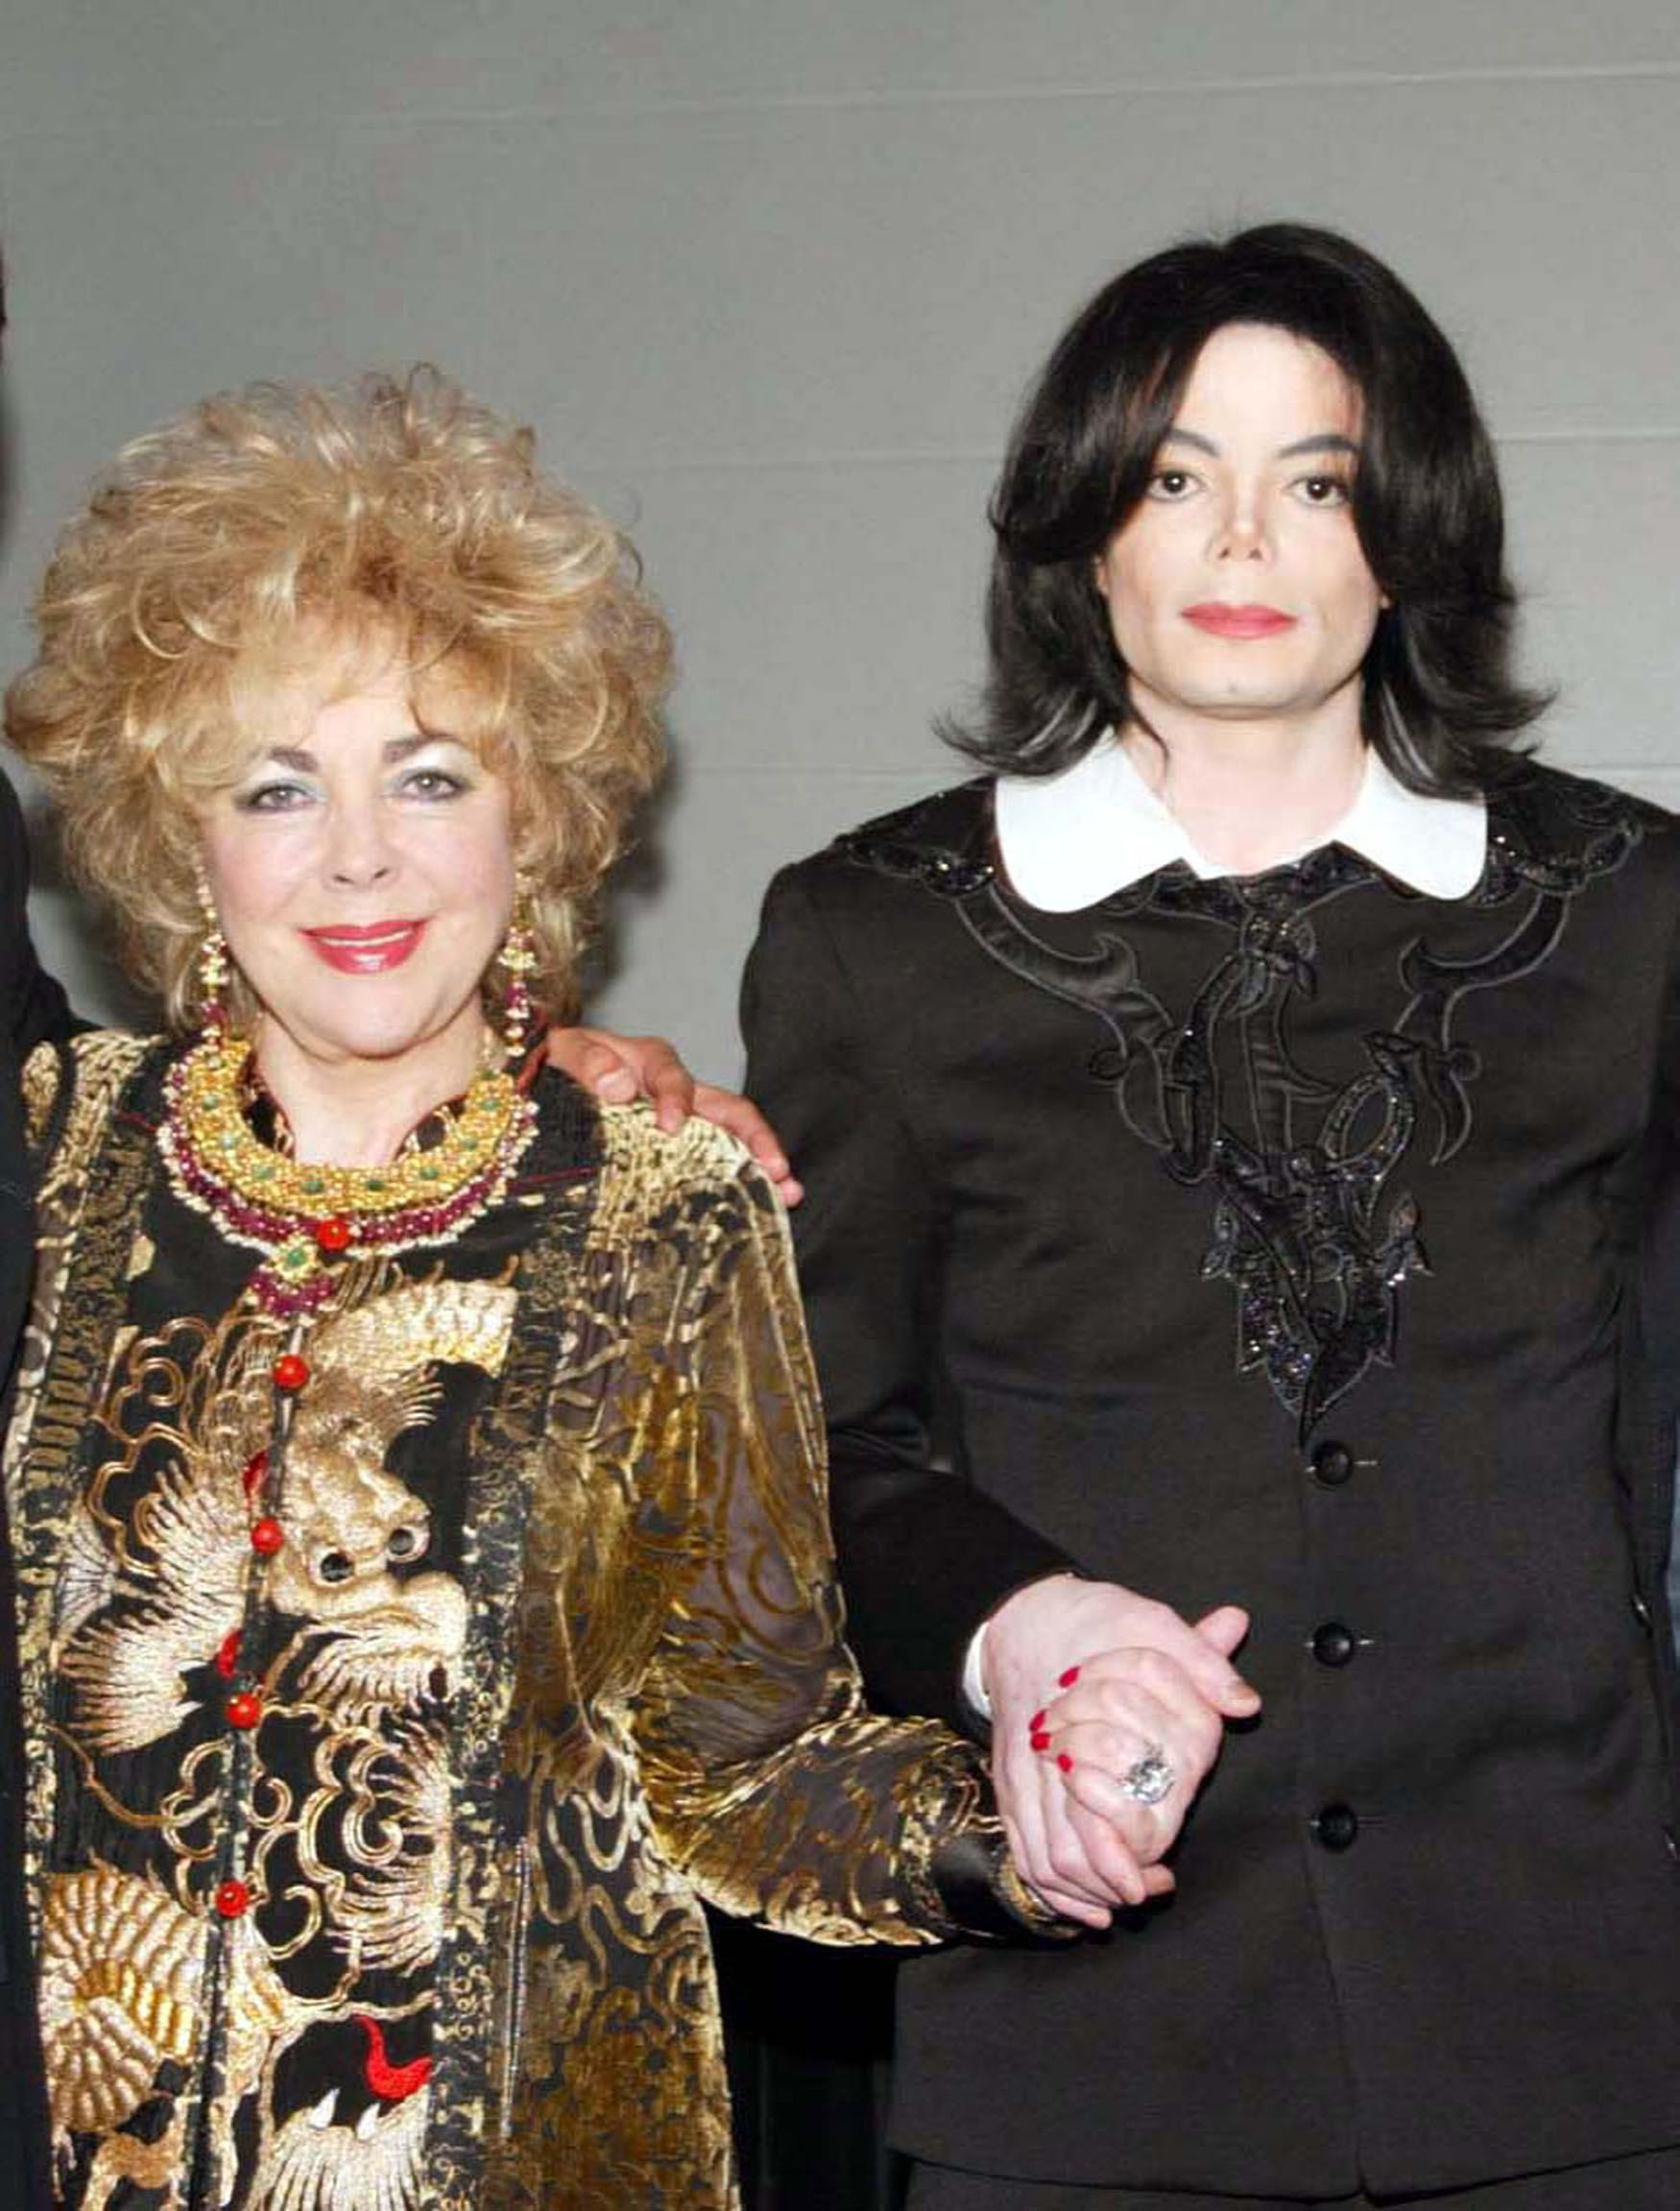 <3 Michael Jackson <3 I'm so glad Michael had her in his life - a true friend.